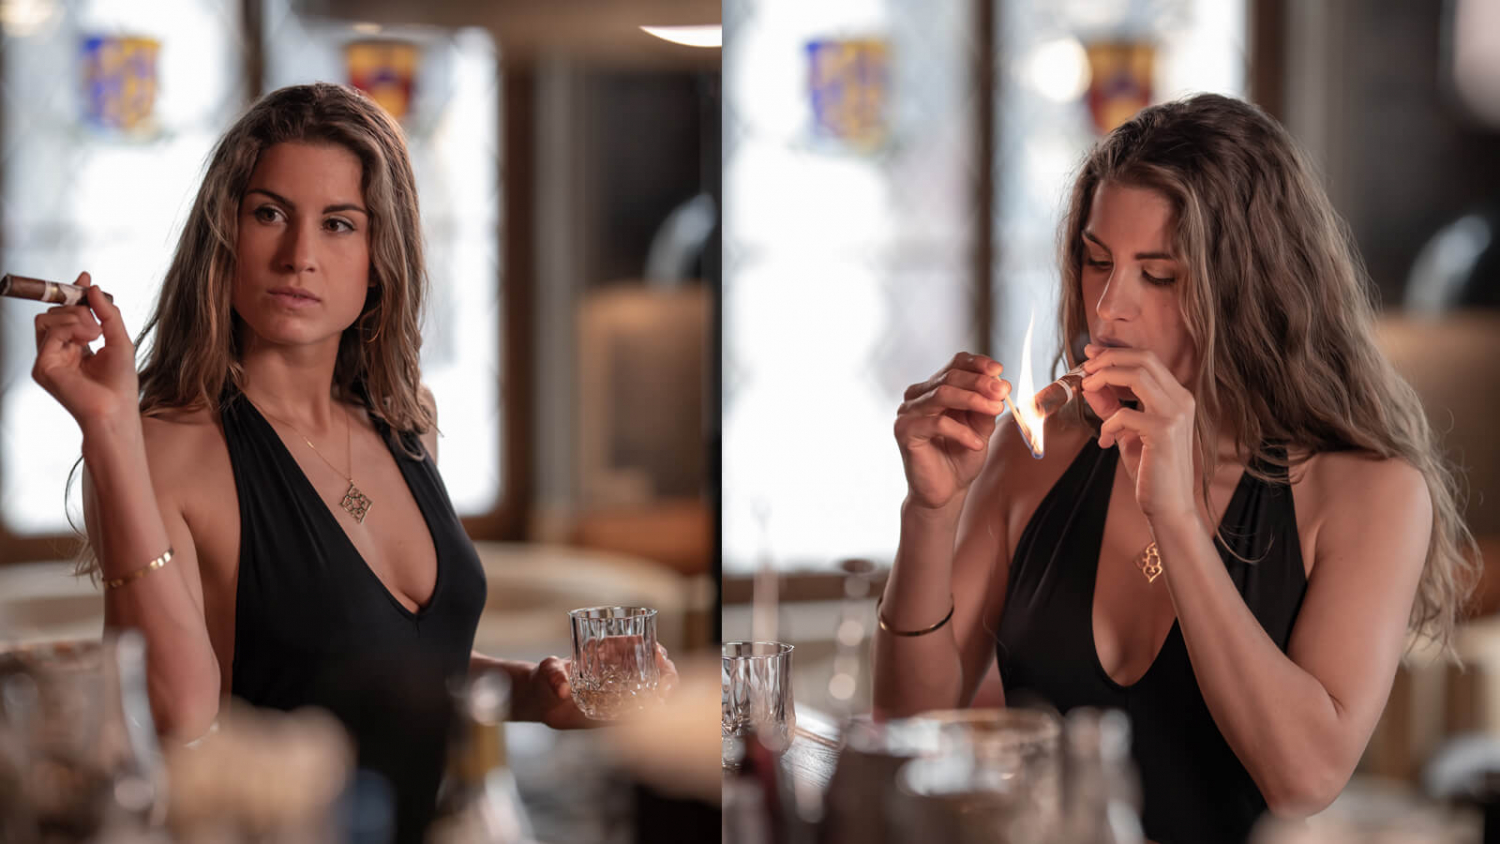 it_classy_pretty_and_quite_attractive_if_a_lady_knows_how_to_smoke_a_cigar_cigarmonkeys_com_cigar_life_style_3.jpg